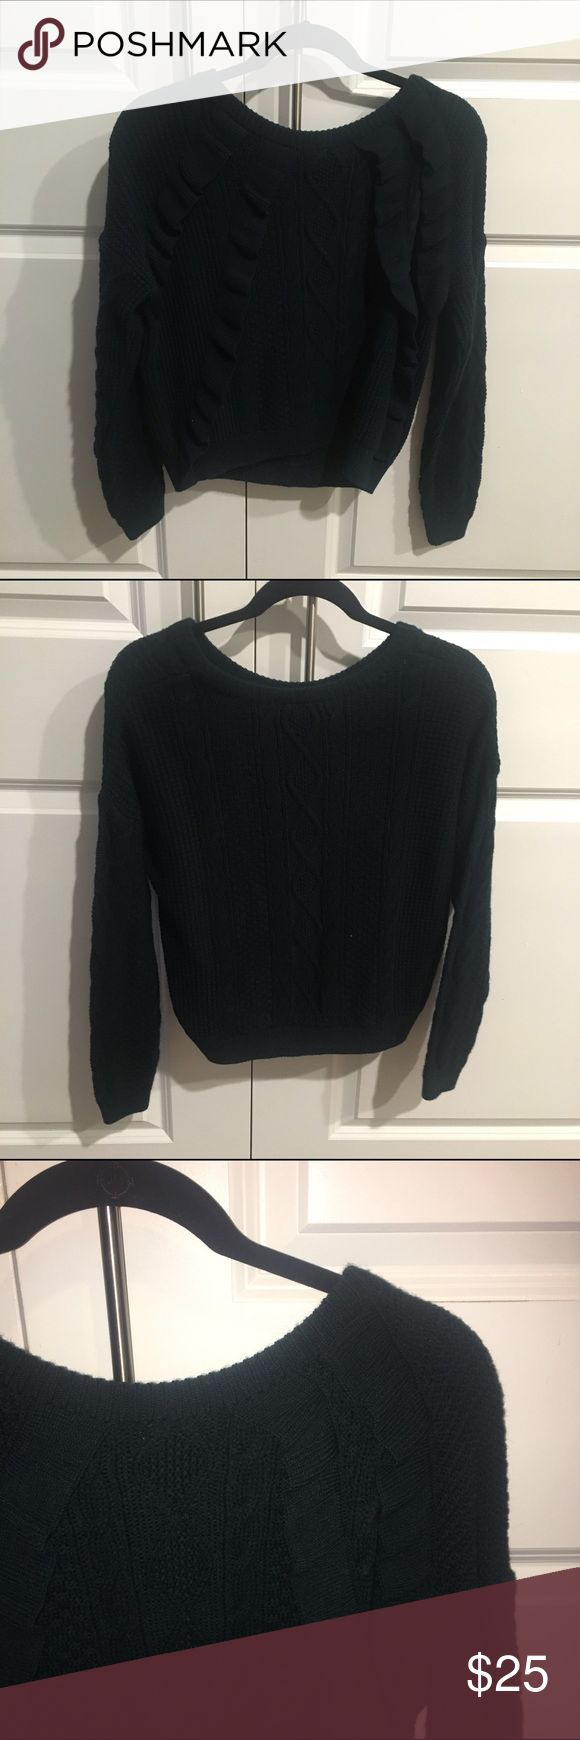 Dark Green Topshop chunky knit sweater size 4 Topshop chunky knit sweater. US 4. Dark green   Ruffles near shoulders. Excellent condition Topshop Sweaters Crew & Scoop Necks